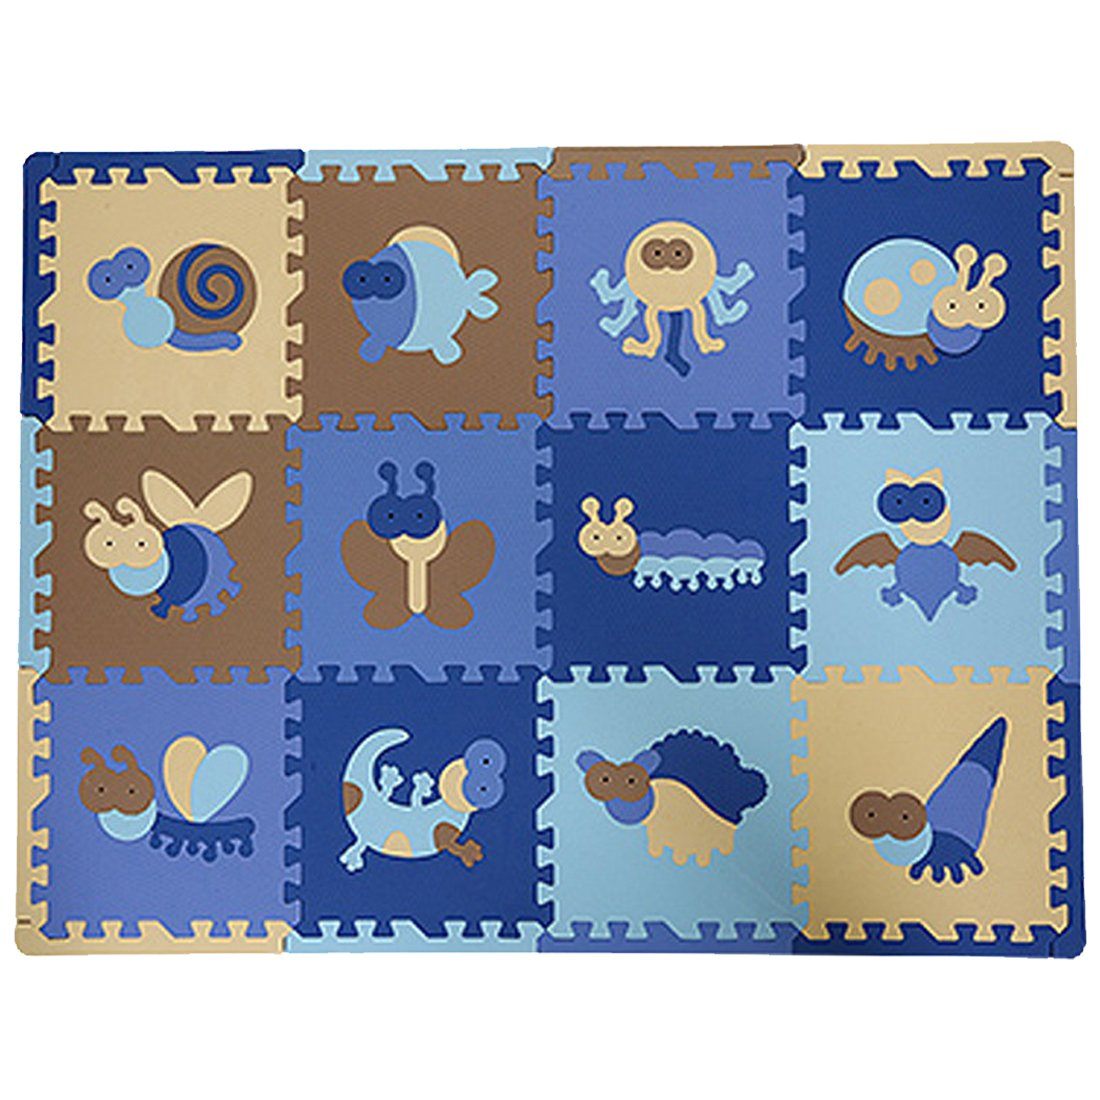 Partiss 12 Pcs Kids Puzzle Crawling Animal Insect EVA Foam Floor Play Game Mats(One Size, AnimalA) CA2016JJH030